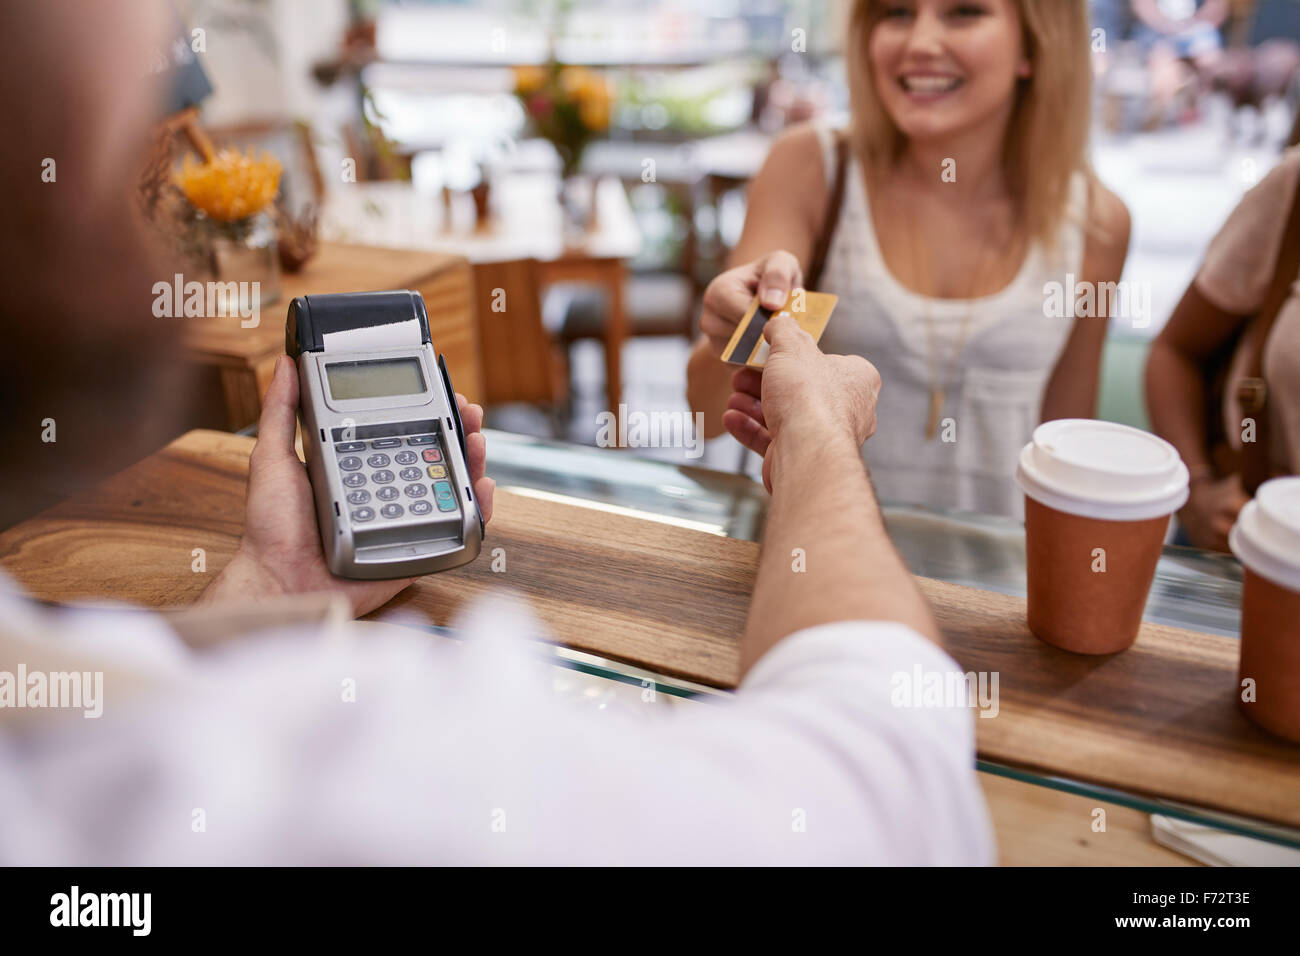 Customer paying for their order with a credit card in a cafe. Bartender holding a credit card reader machine and - Stock Image